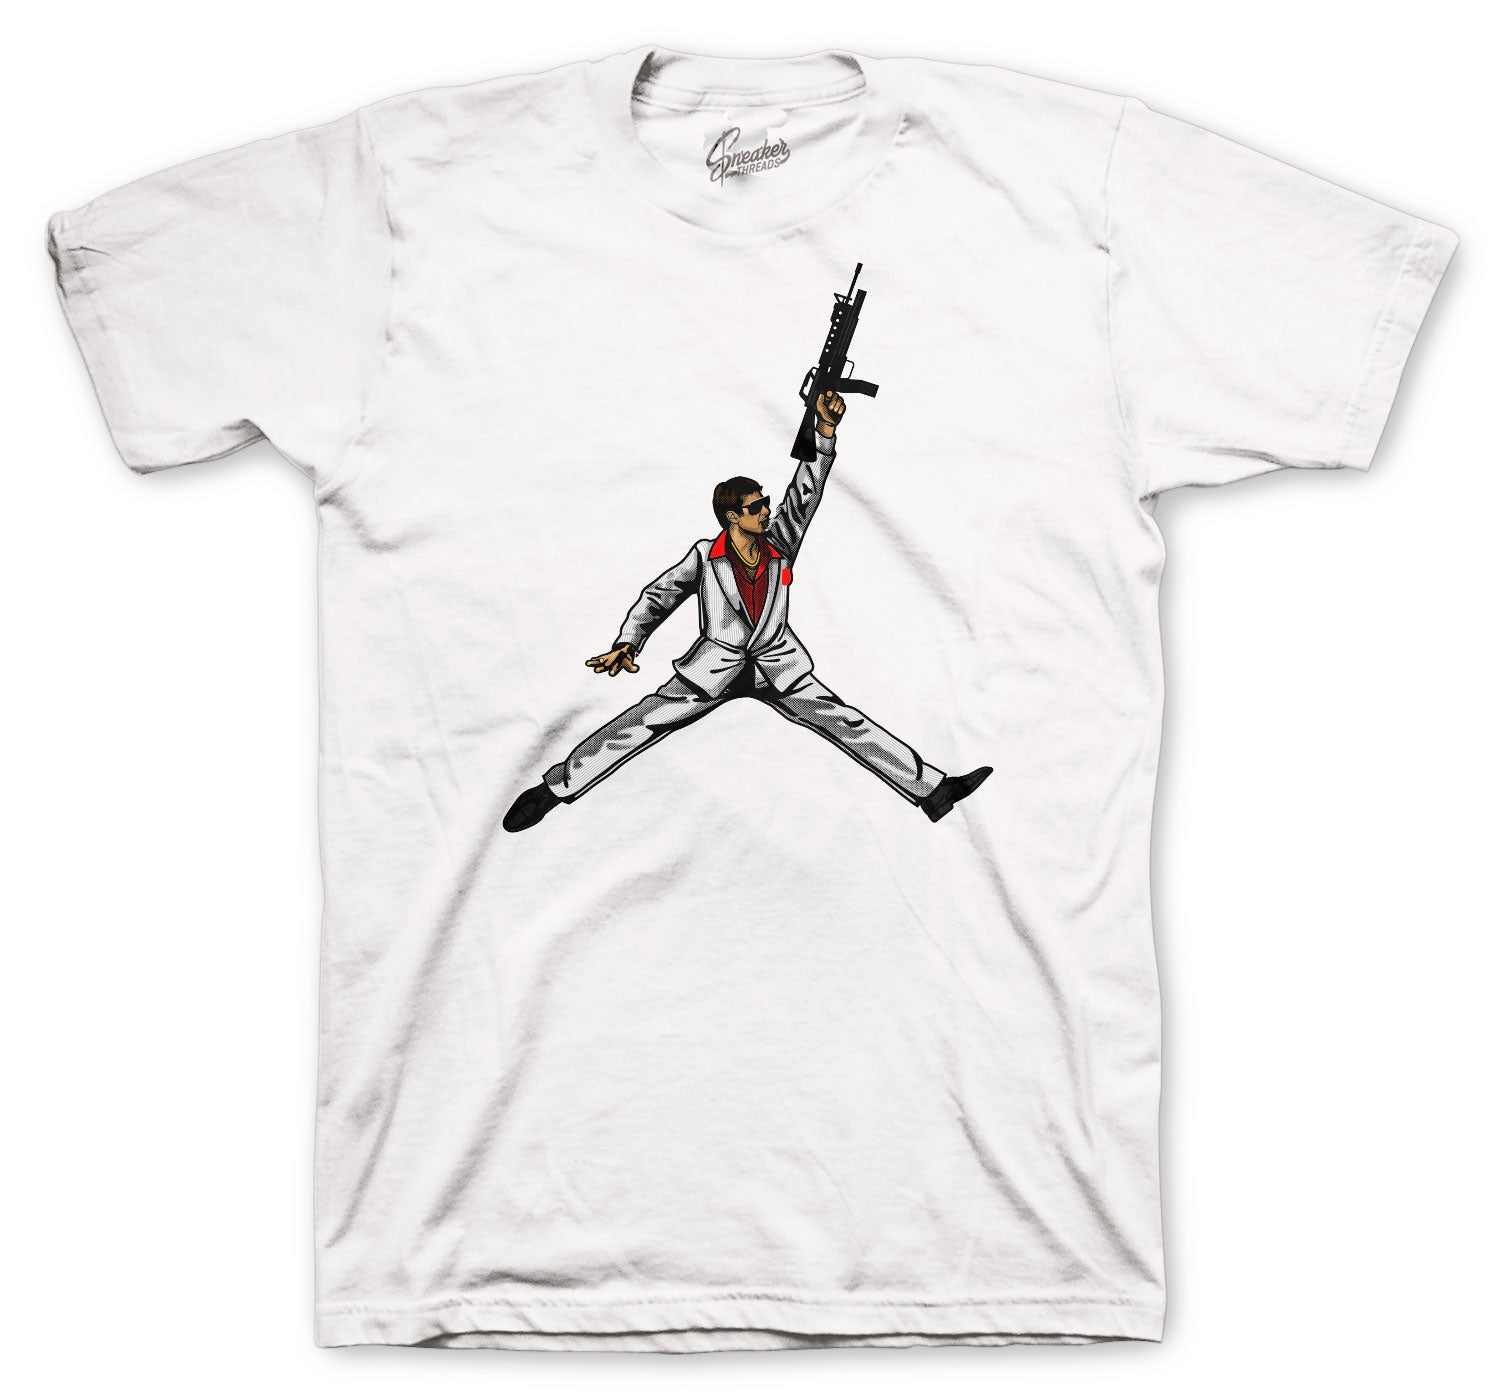 Fire Red Jordan 4 sneaker collection matching mens tees